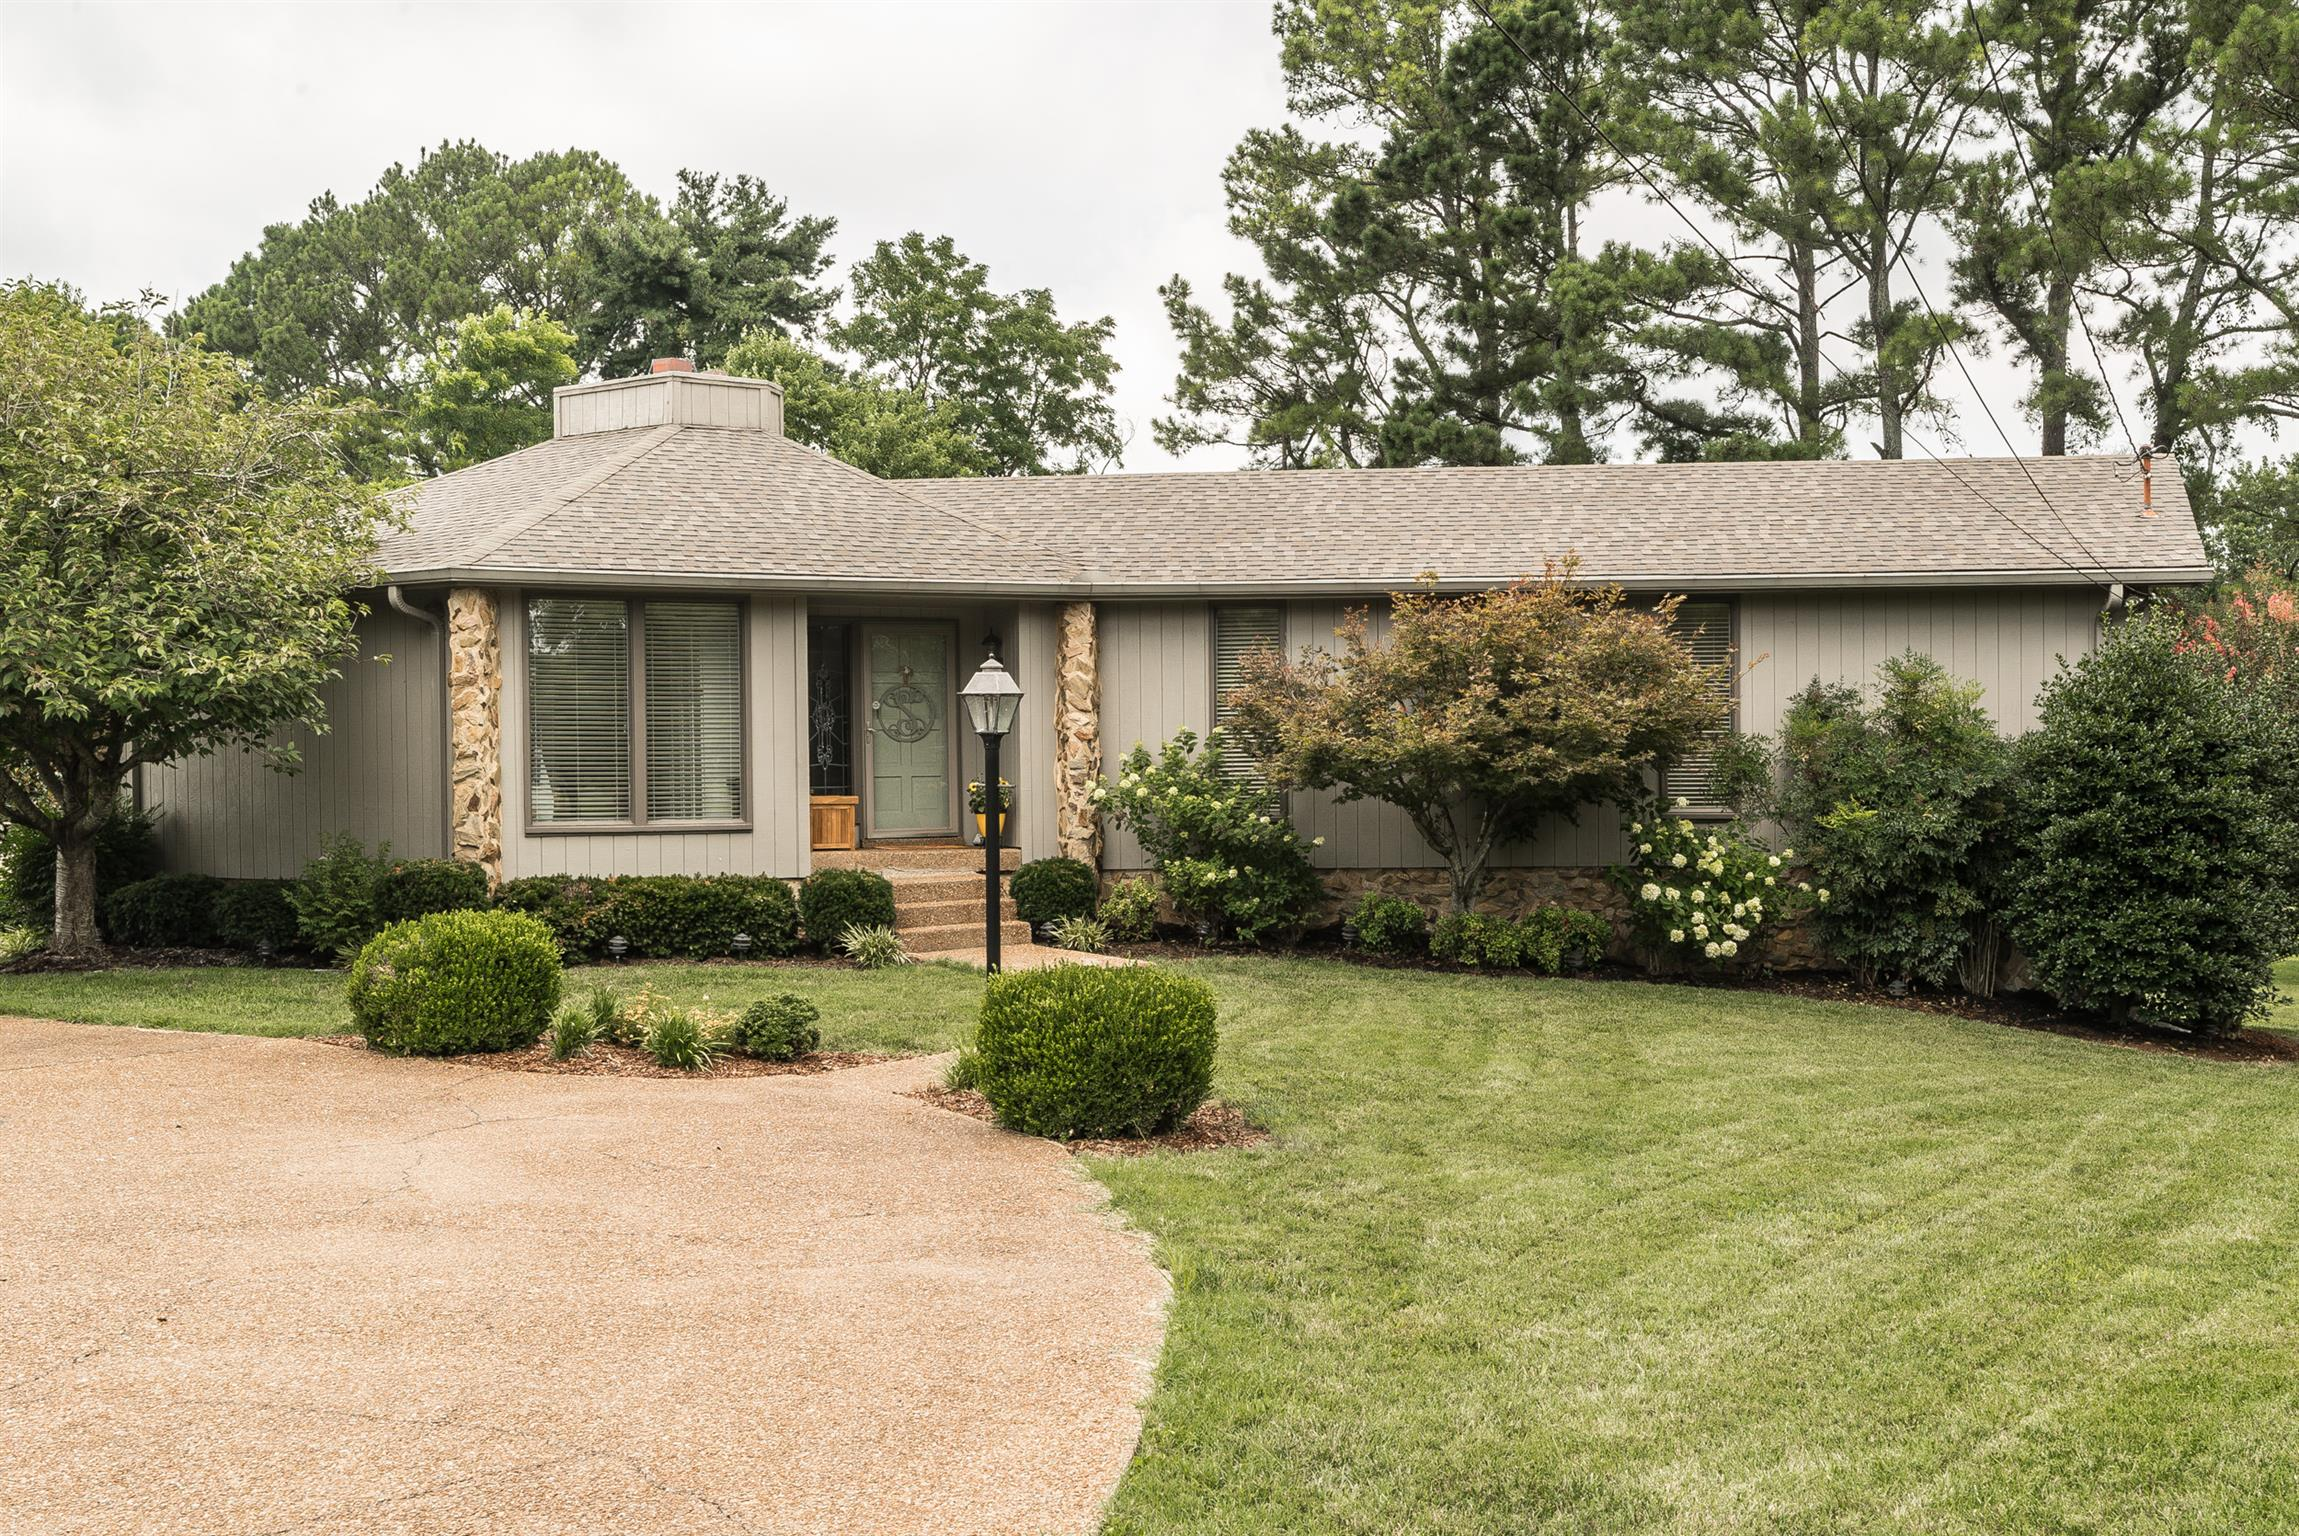 138 Fairways Dr, Hendersonville, TN 37075